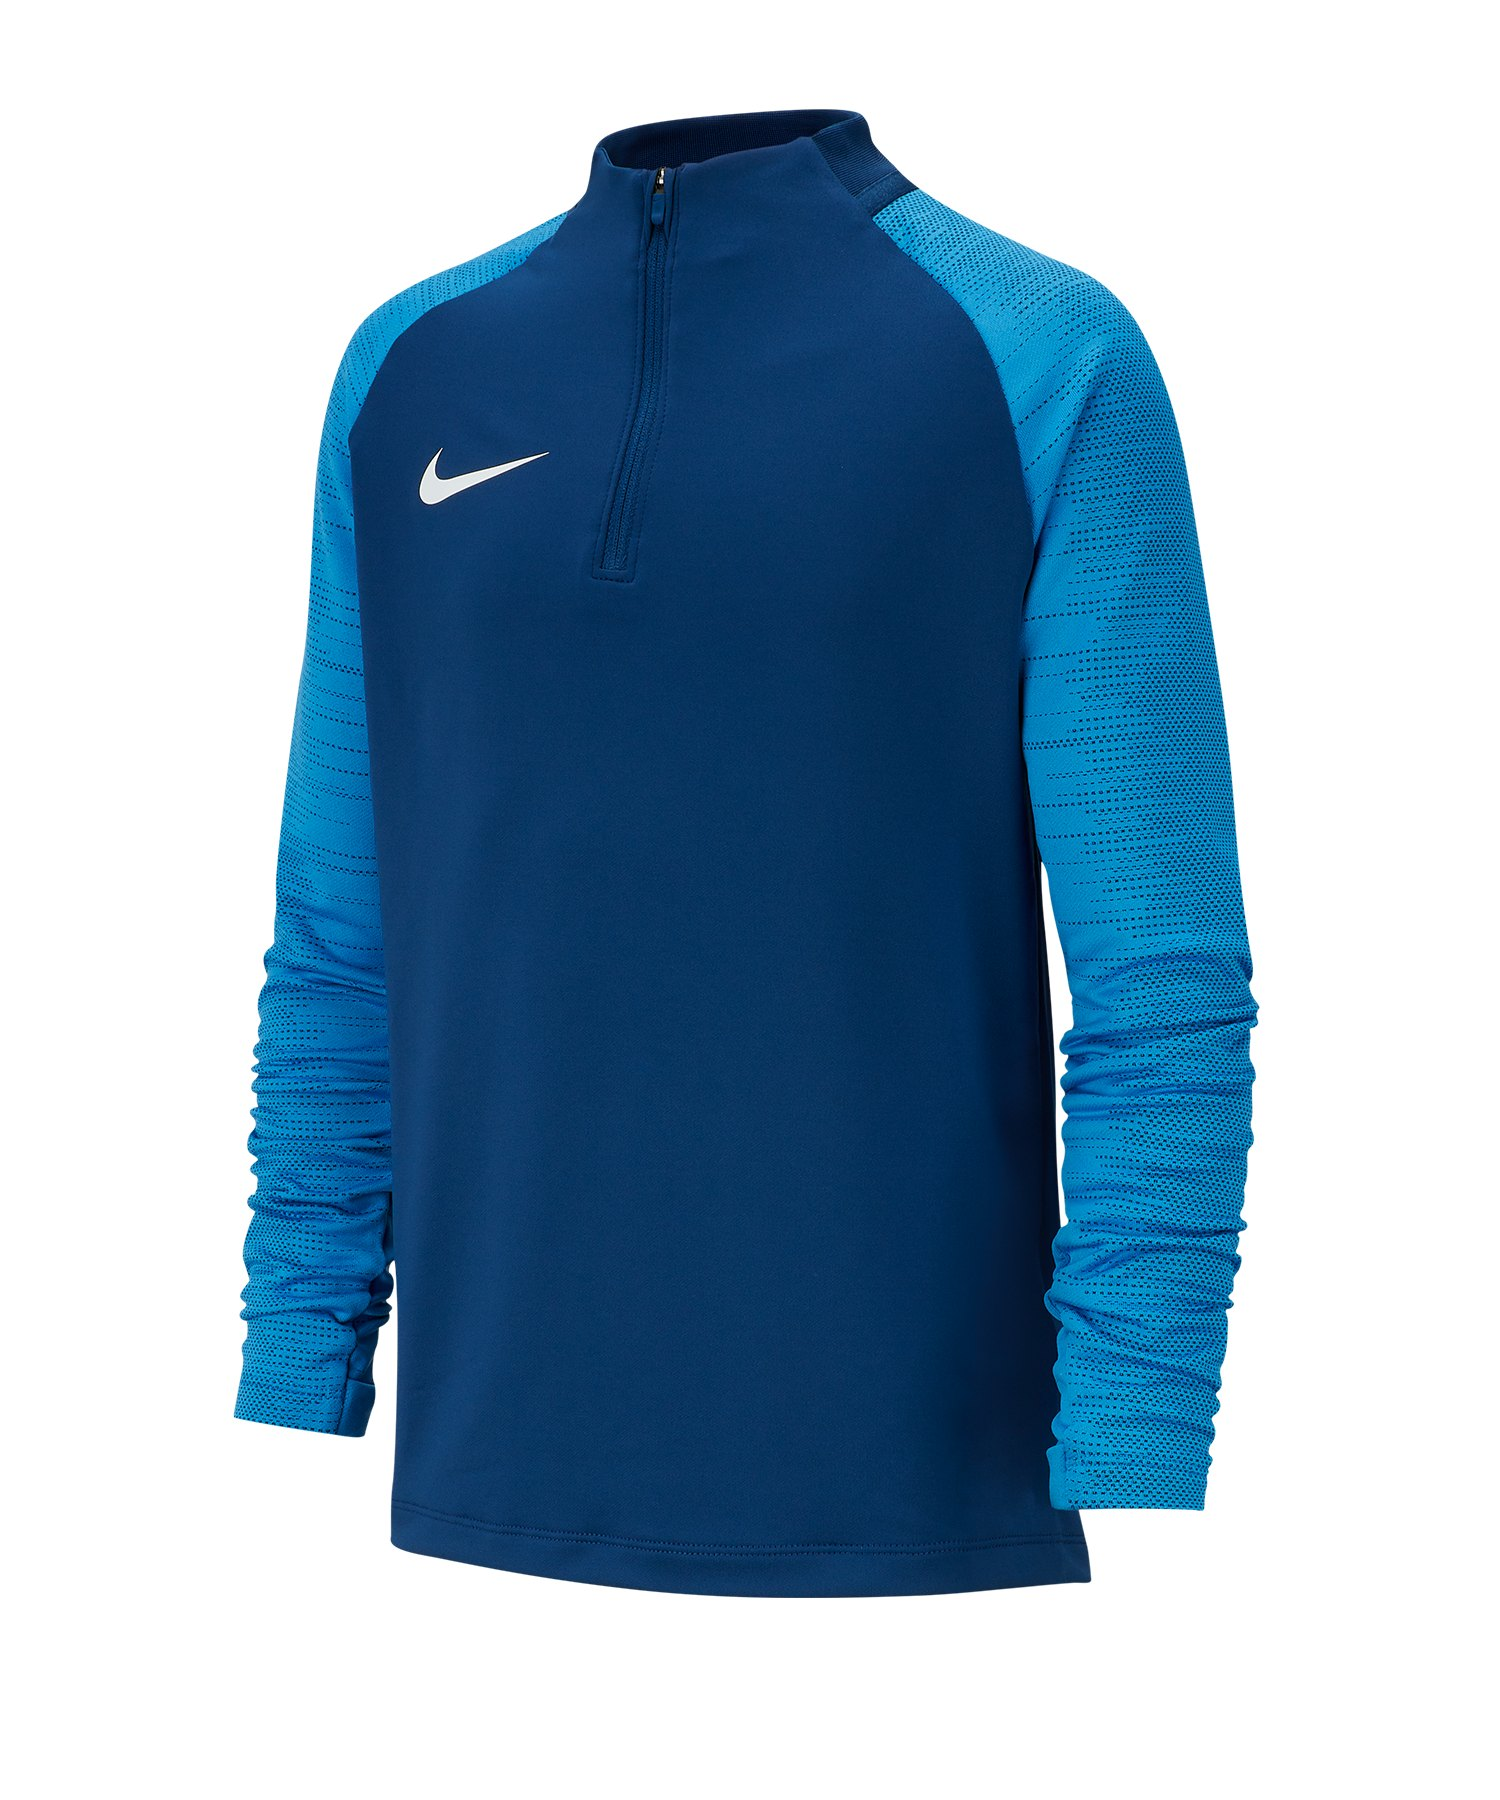 Nike Dri-FIT Strike 1/4 Zip Drill Top Kids F435 - blau